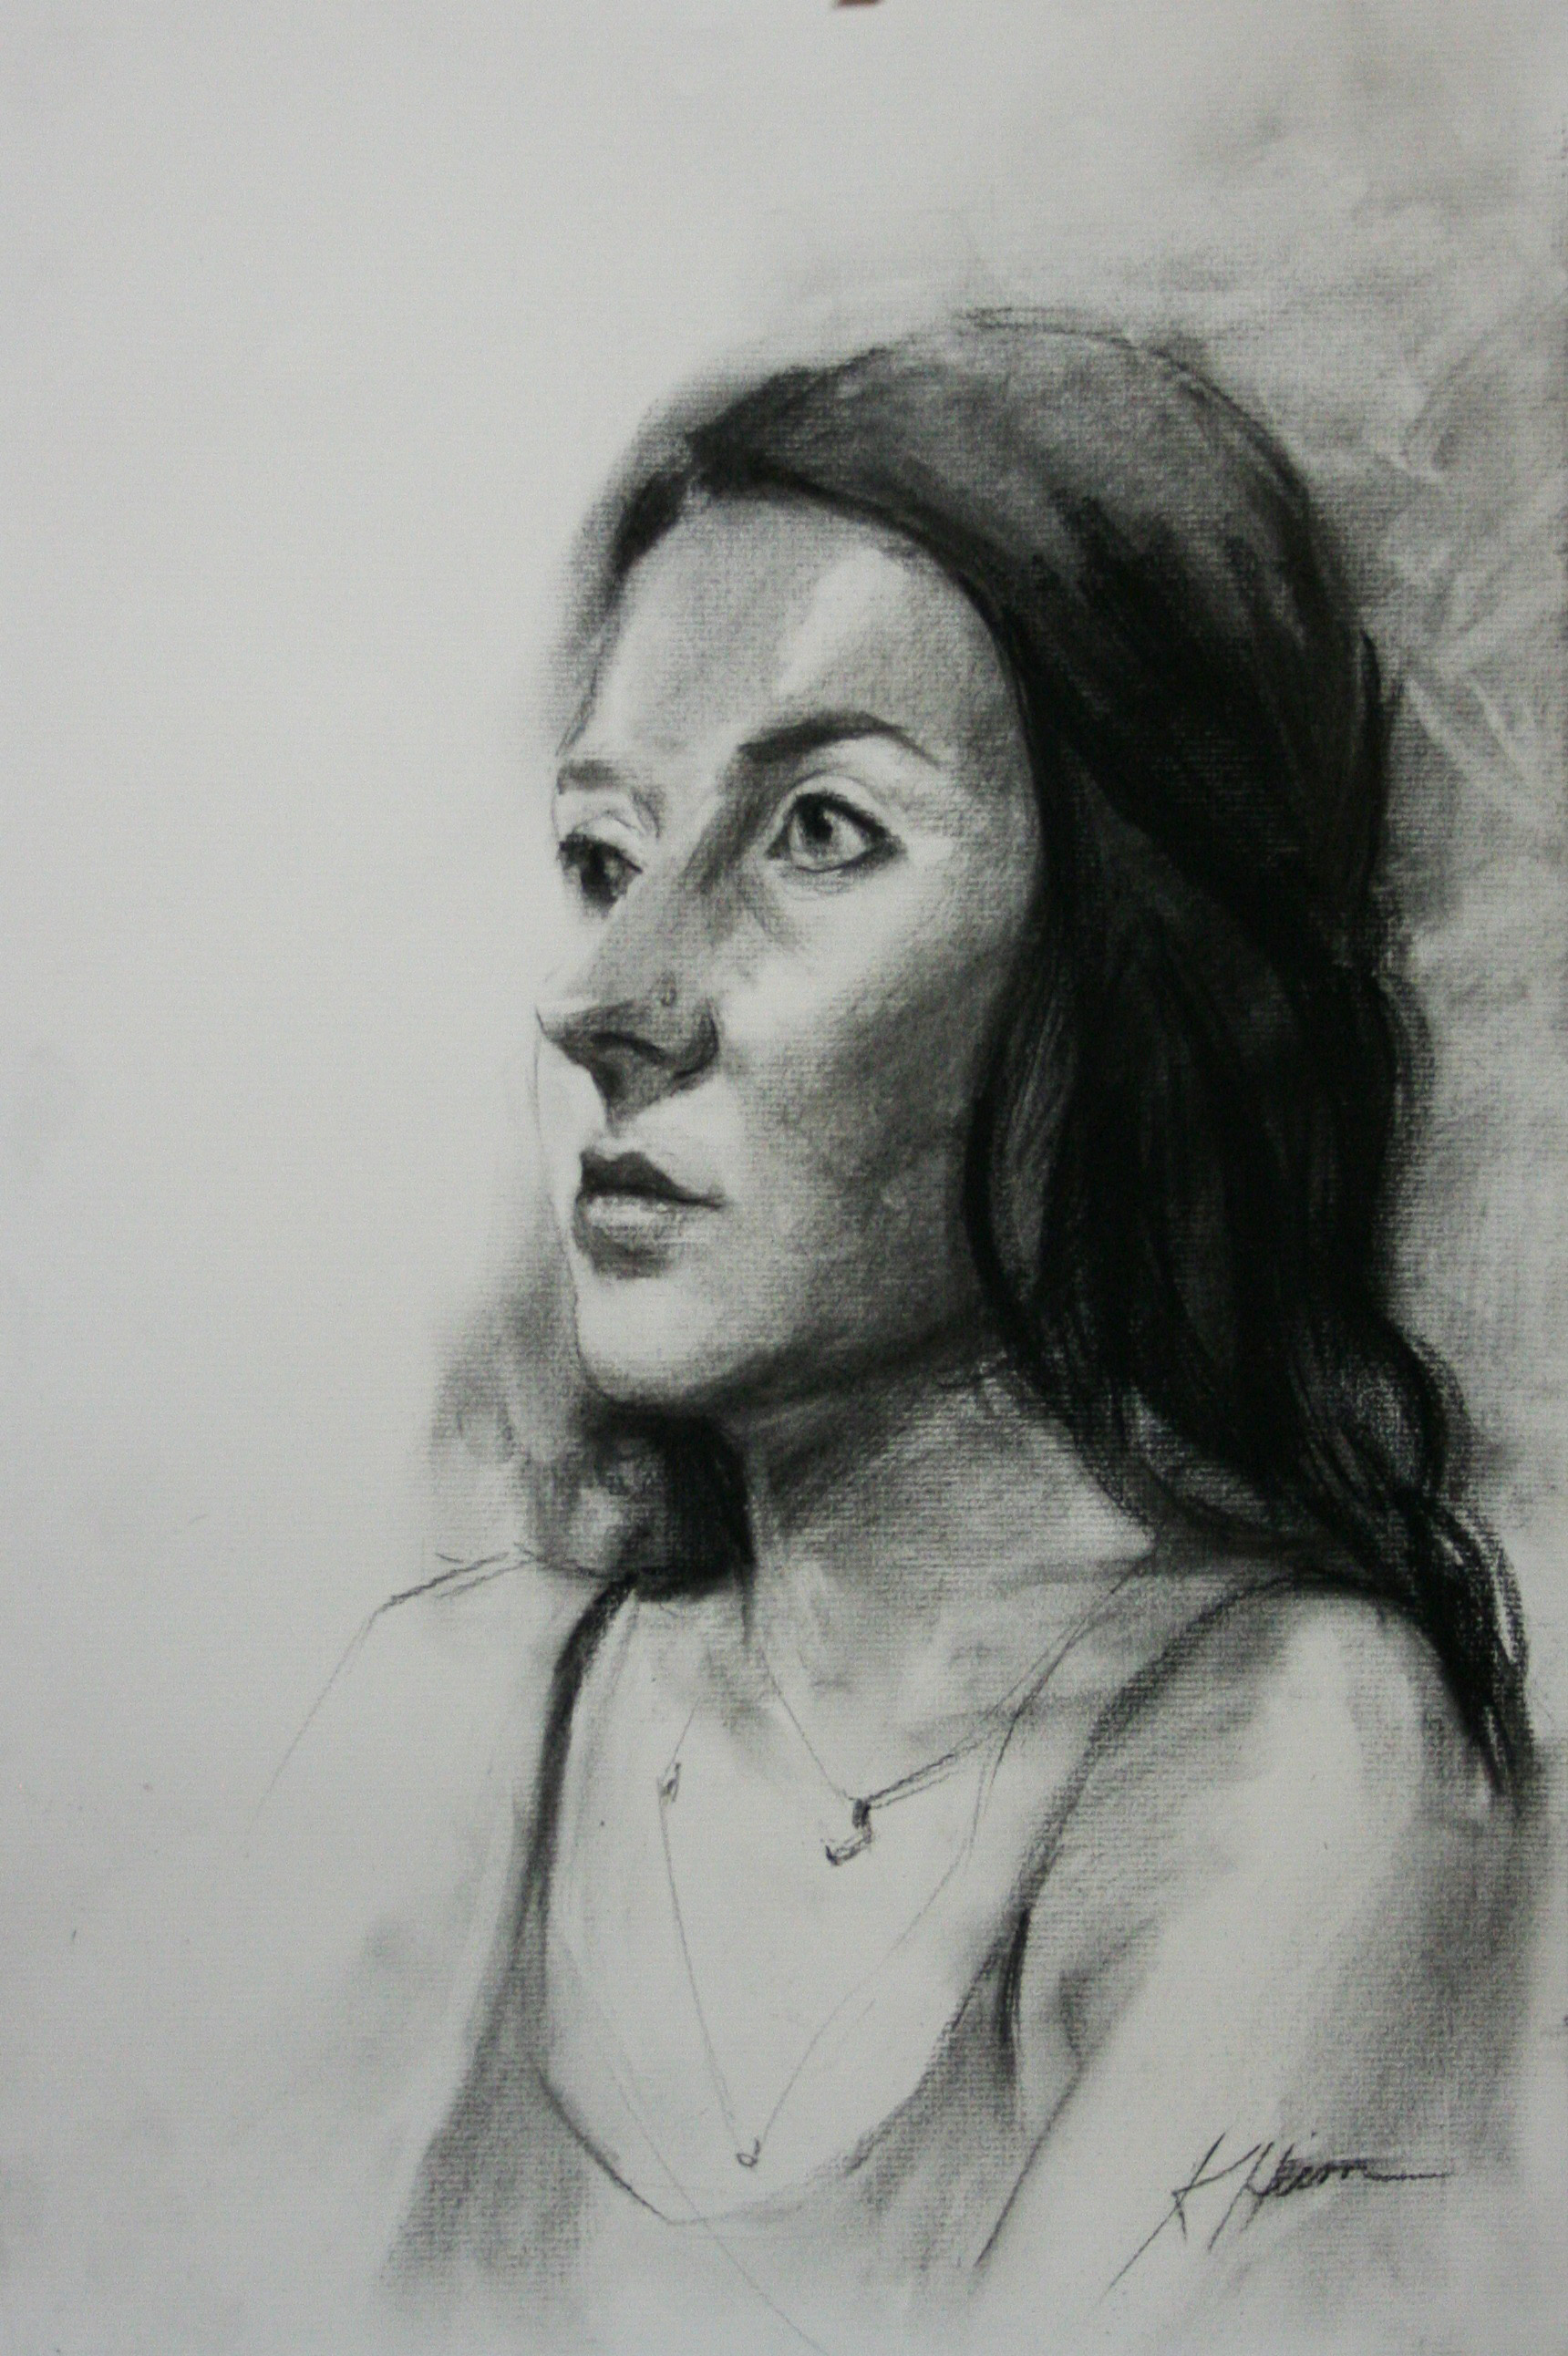 Kathryn Heim did this hour drawing.